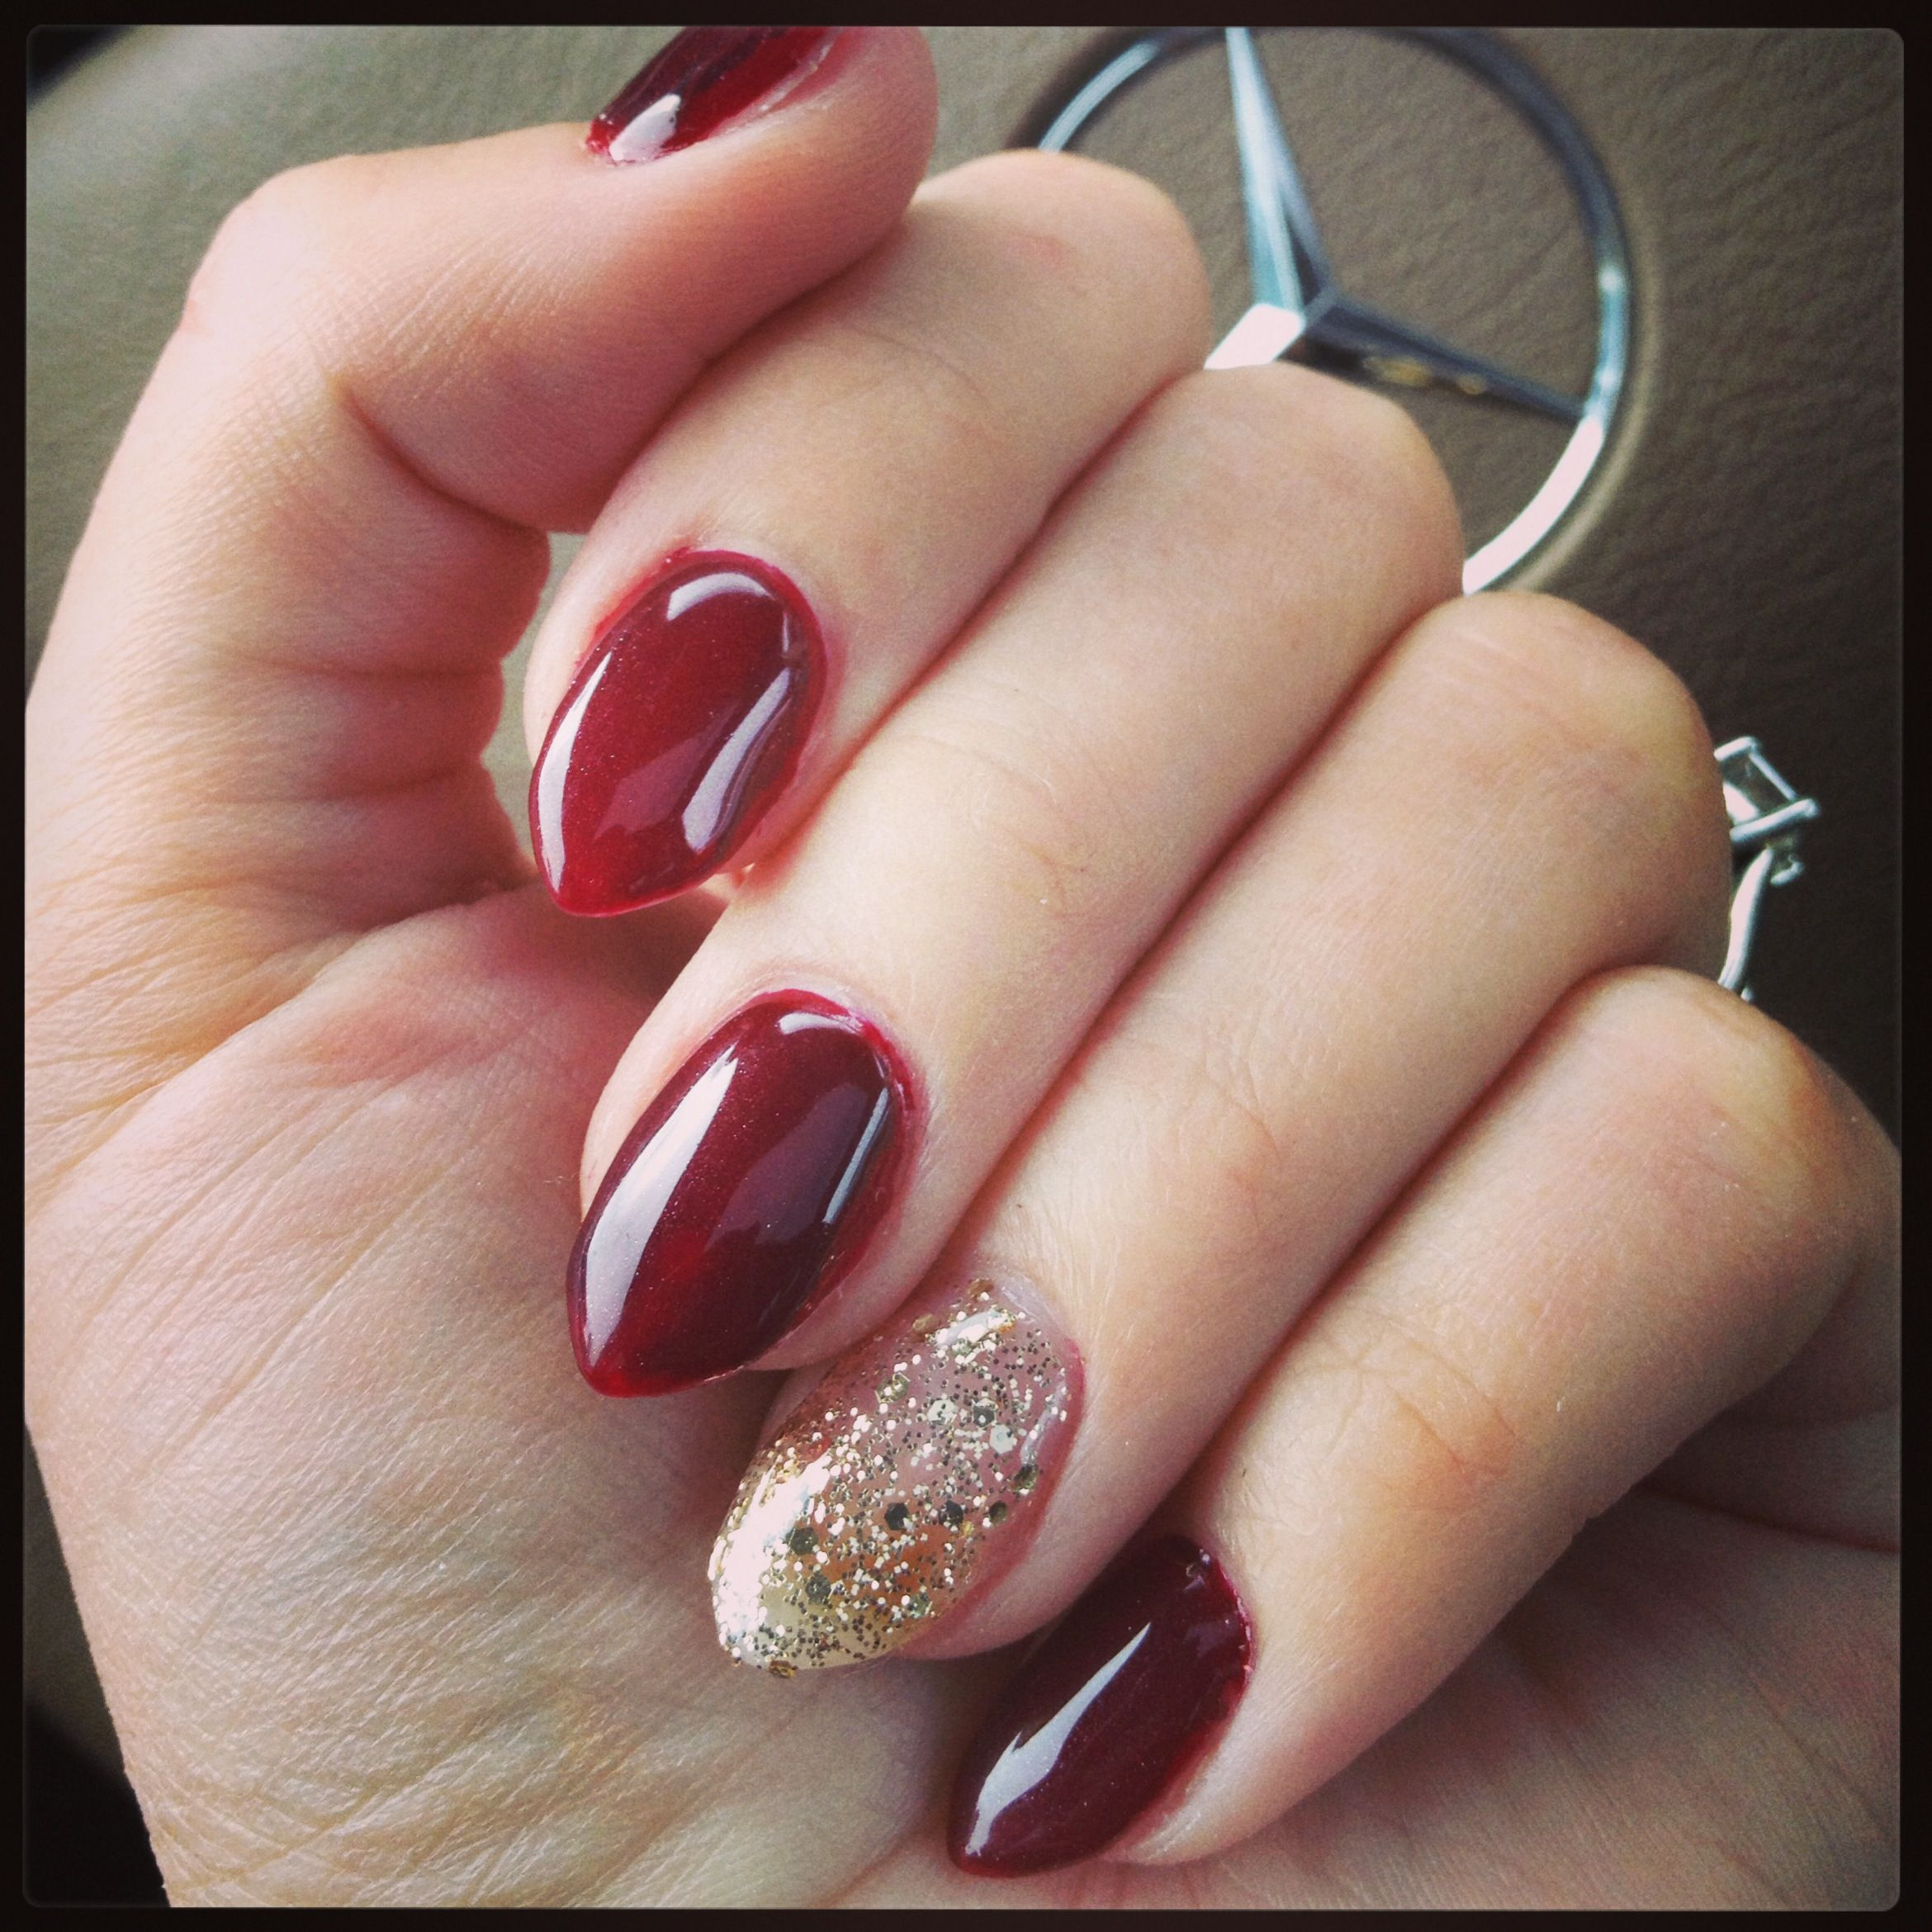 oxblood red and bling fing gold glitter accent nail perfect almond nails for fall beauty. Black Bedroom Furniture Sets. Home Design Ideas